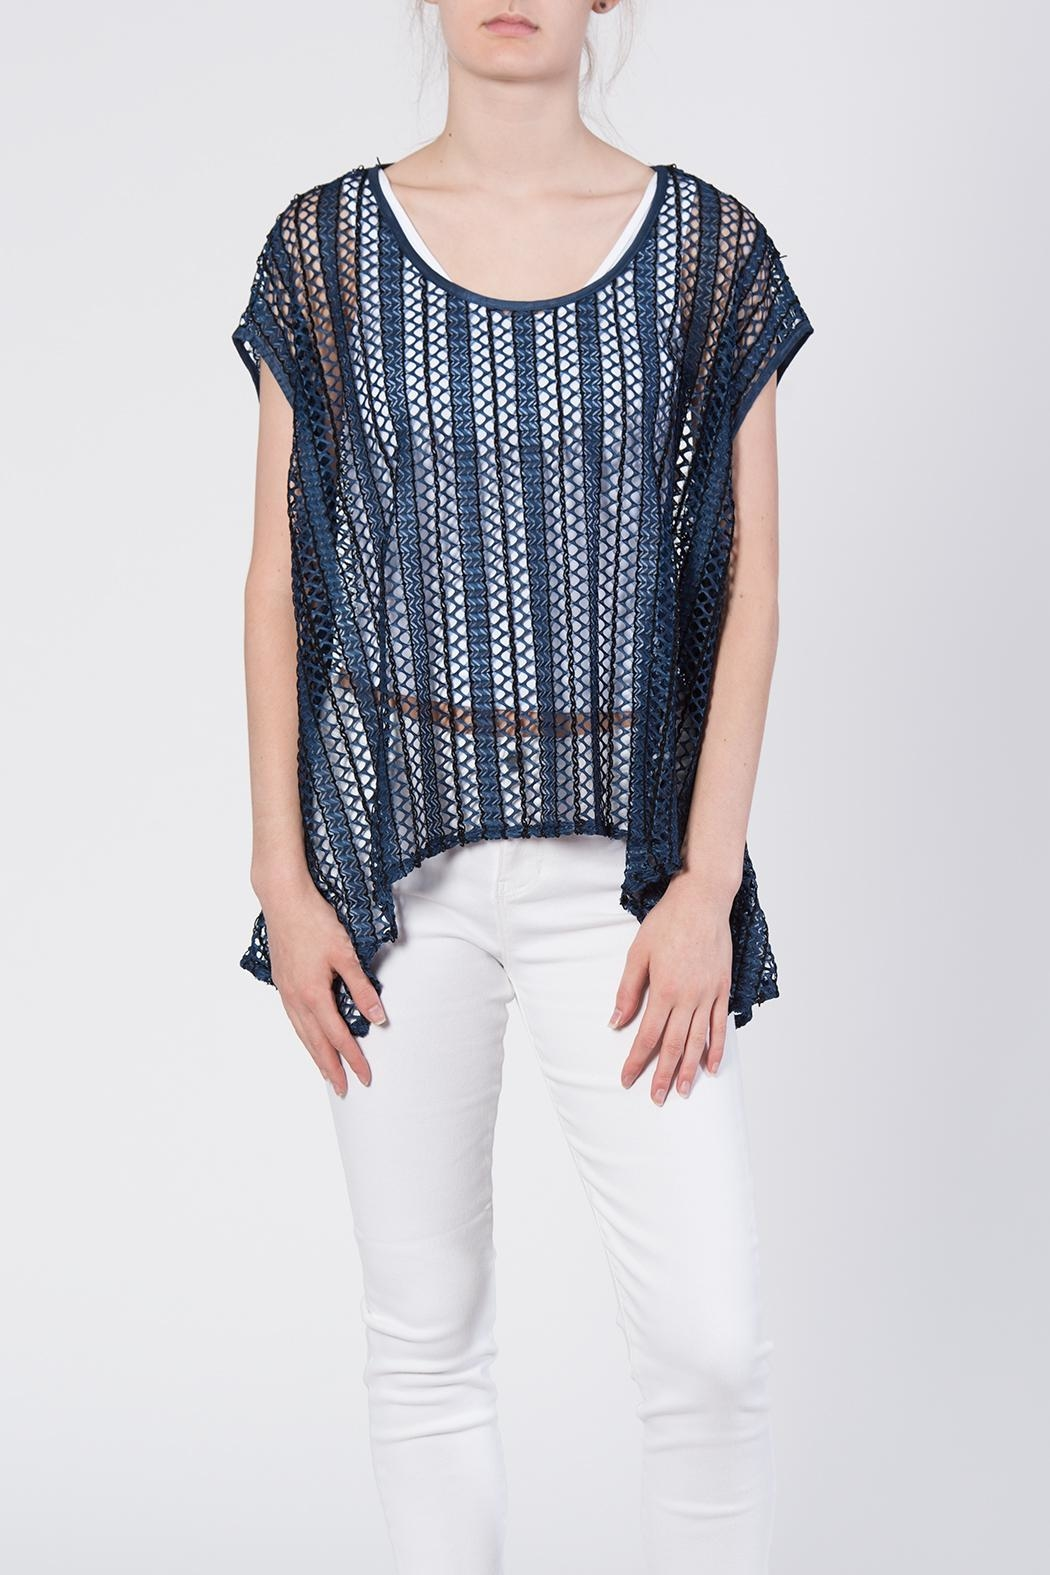 beulah Sheer Knit Top - Main Image